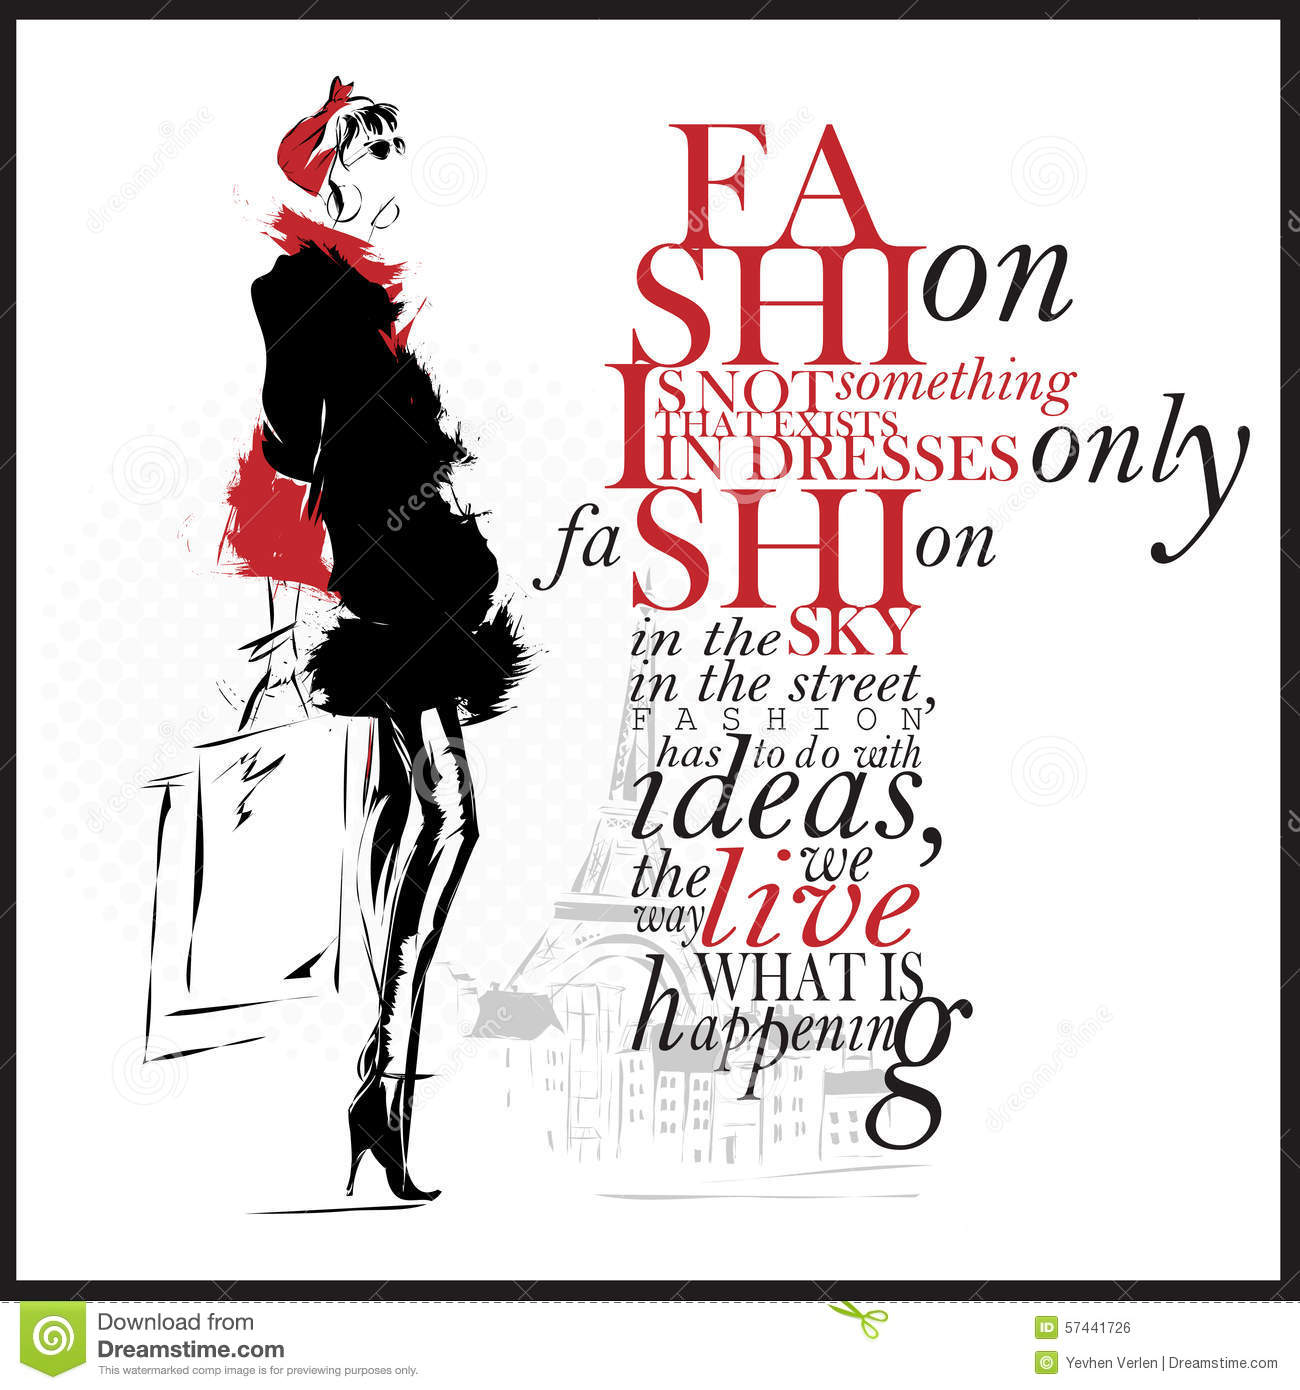 fashion illustration with quote modern and white background stock illustration fashion illustration with quote modern and white background stock illustration